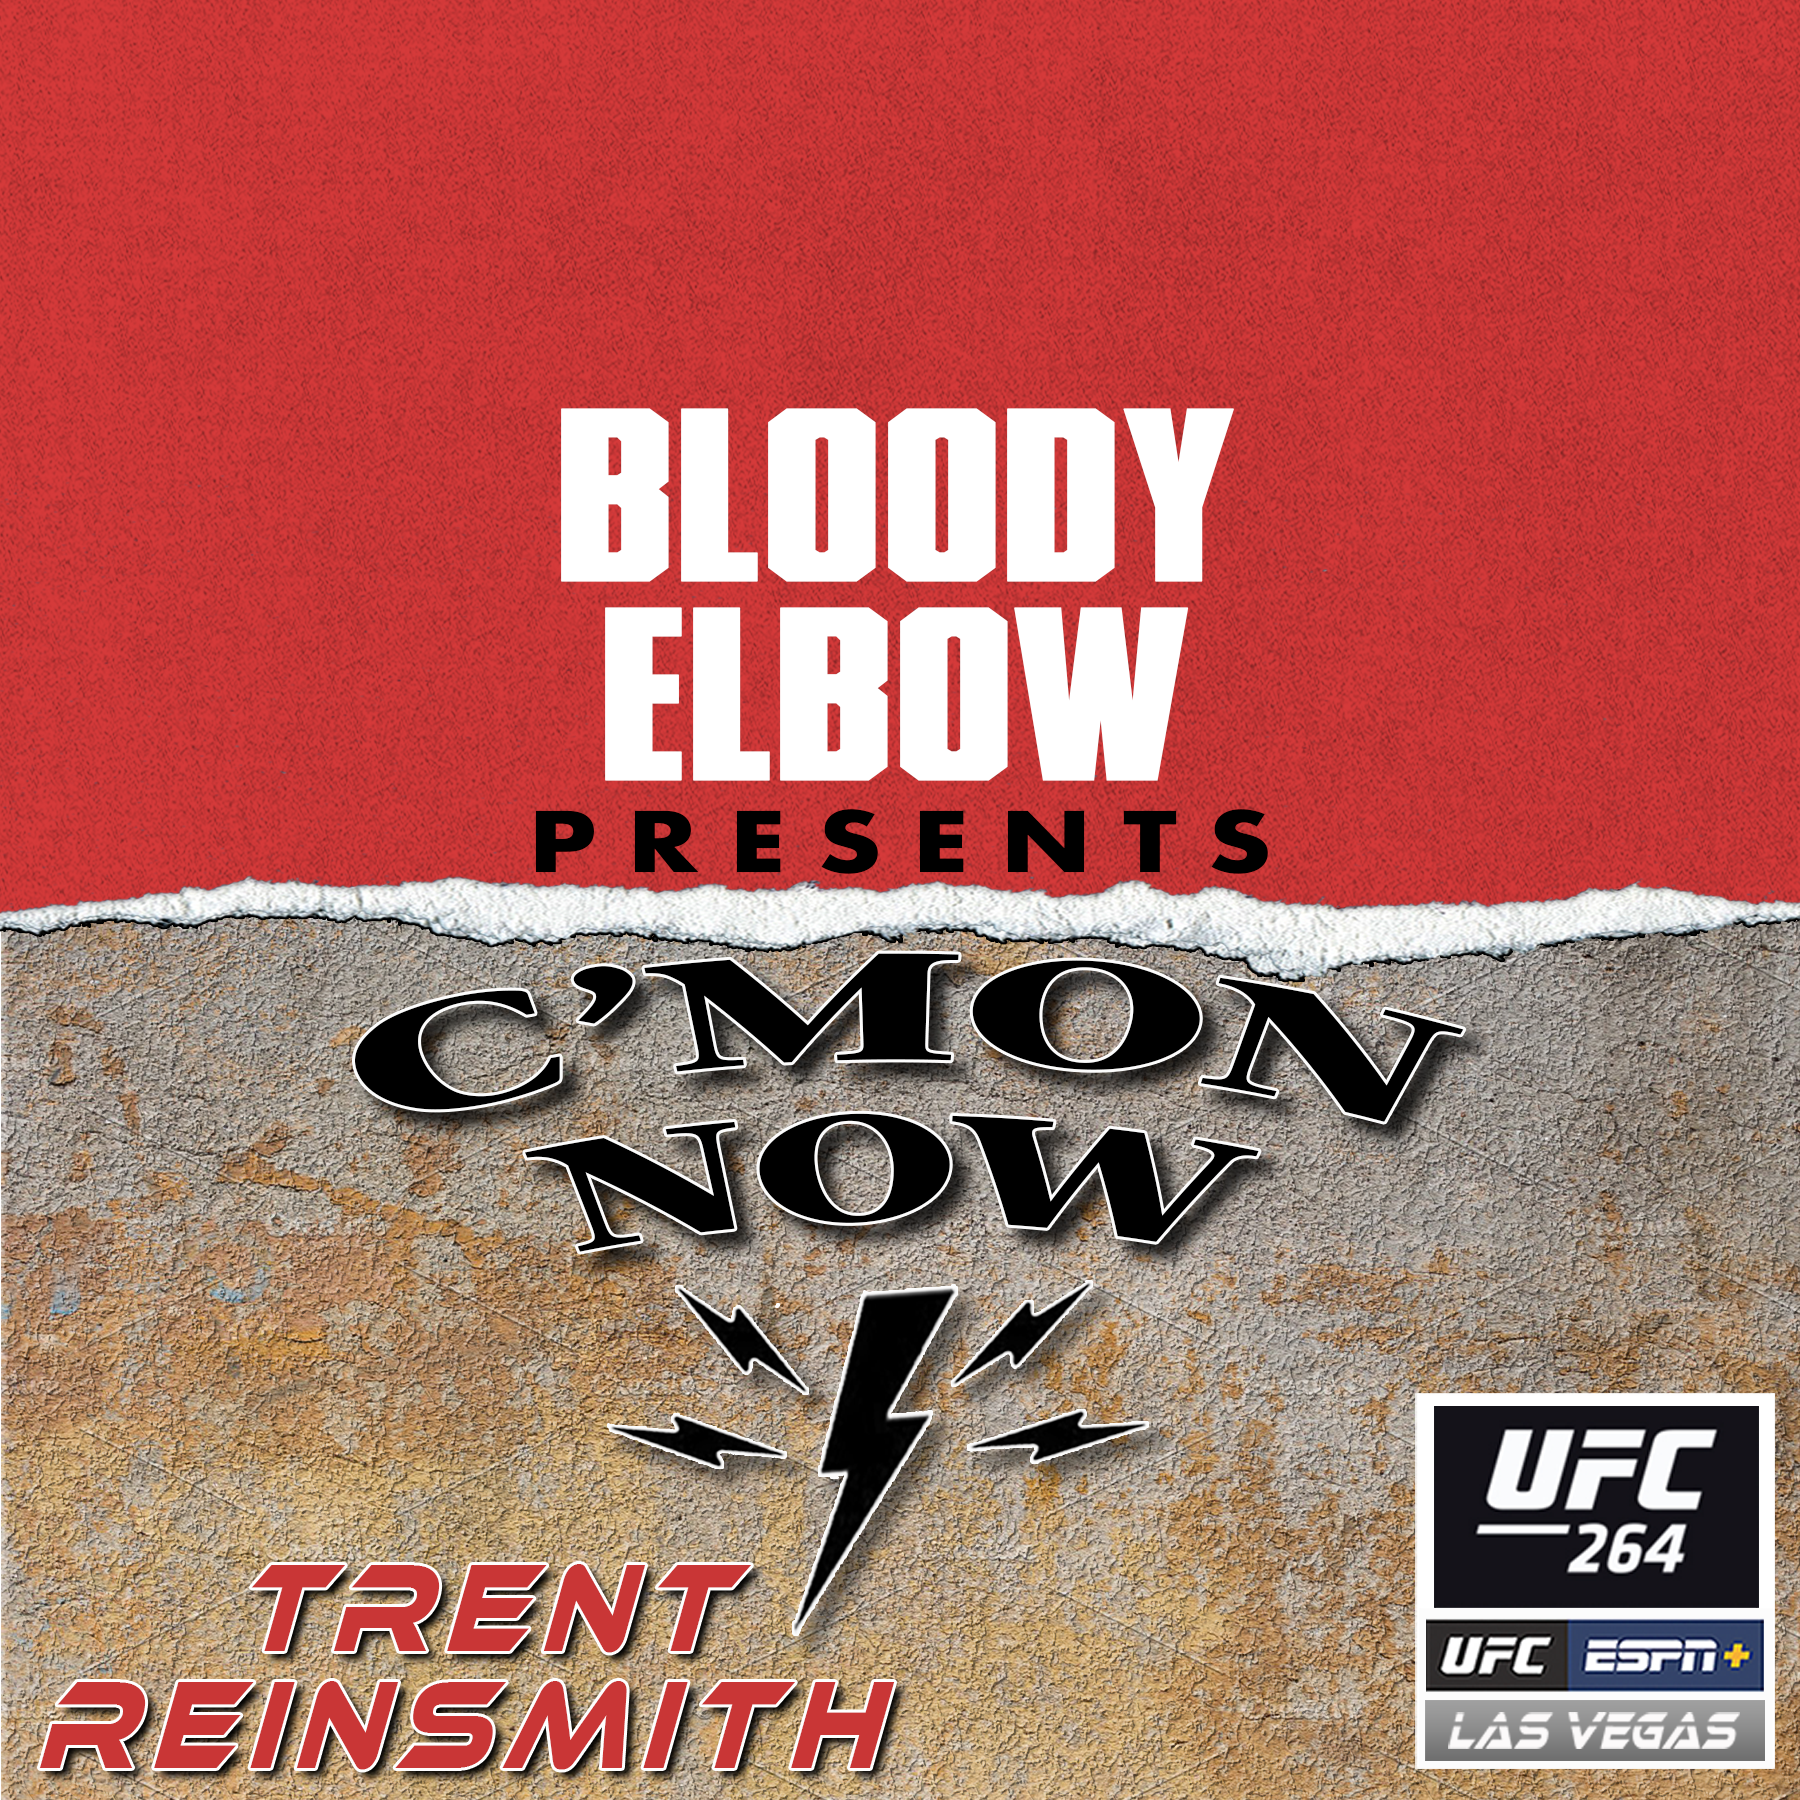 C'MON NOW, Best of the C'Mon Now MMA Podcast, Trent Reinsmith, UFC Podcast, MMA Podcast, UFC News, UFC Editorial, UFC 264,